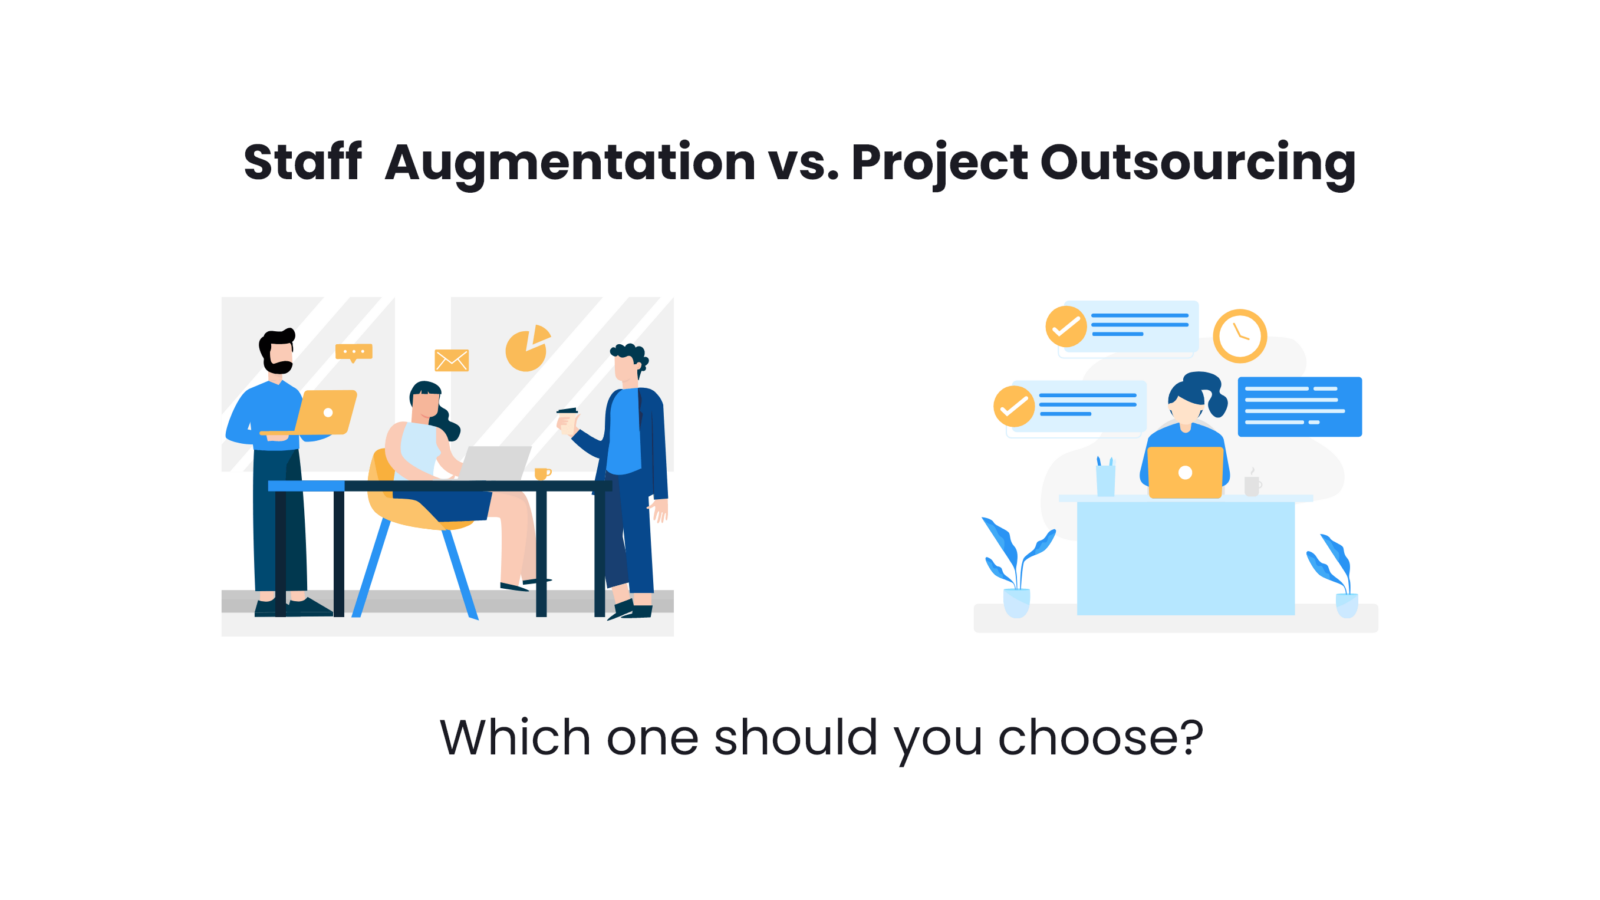 Staff Augmentation vs. Project Outsourcing